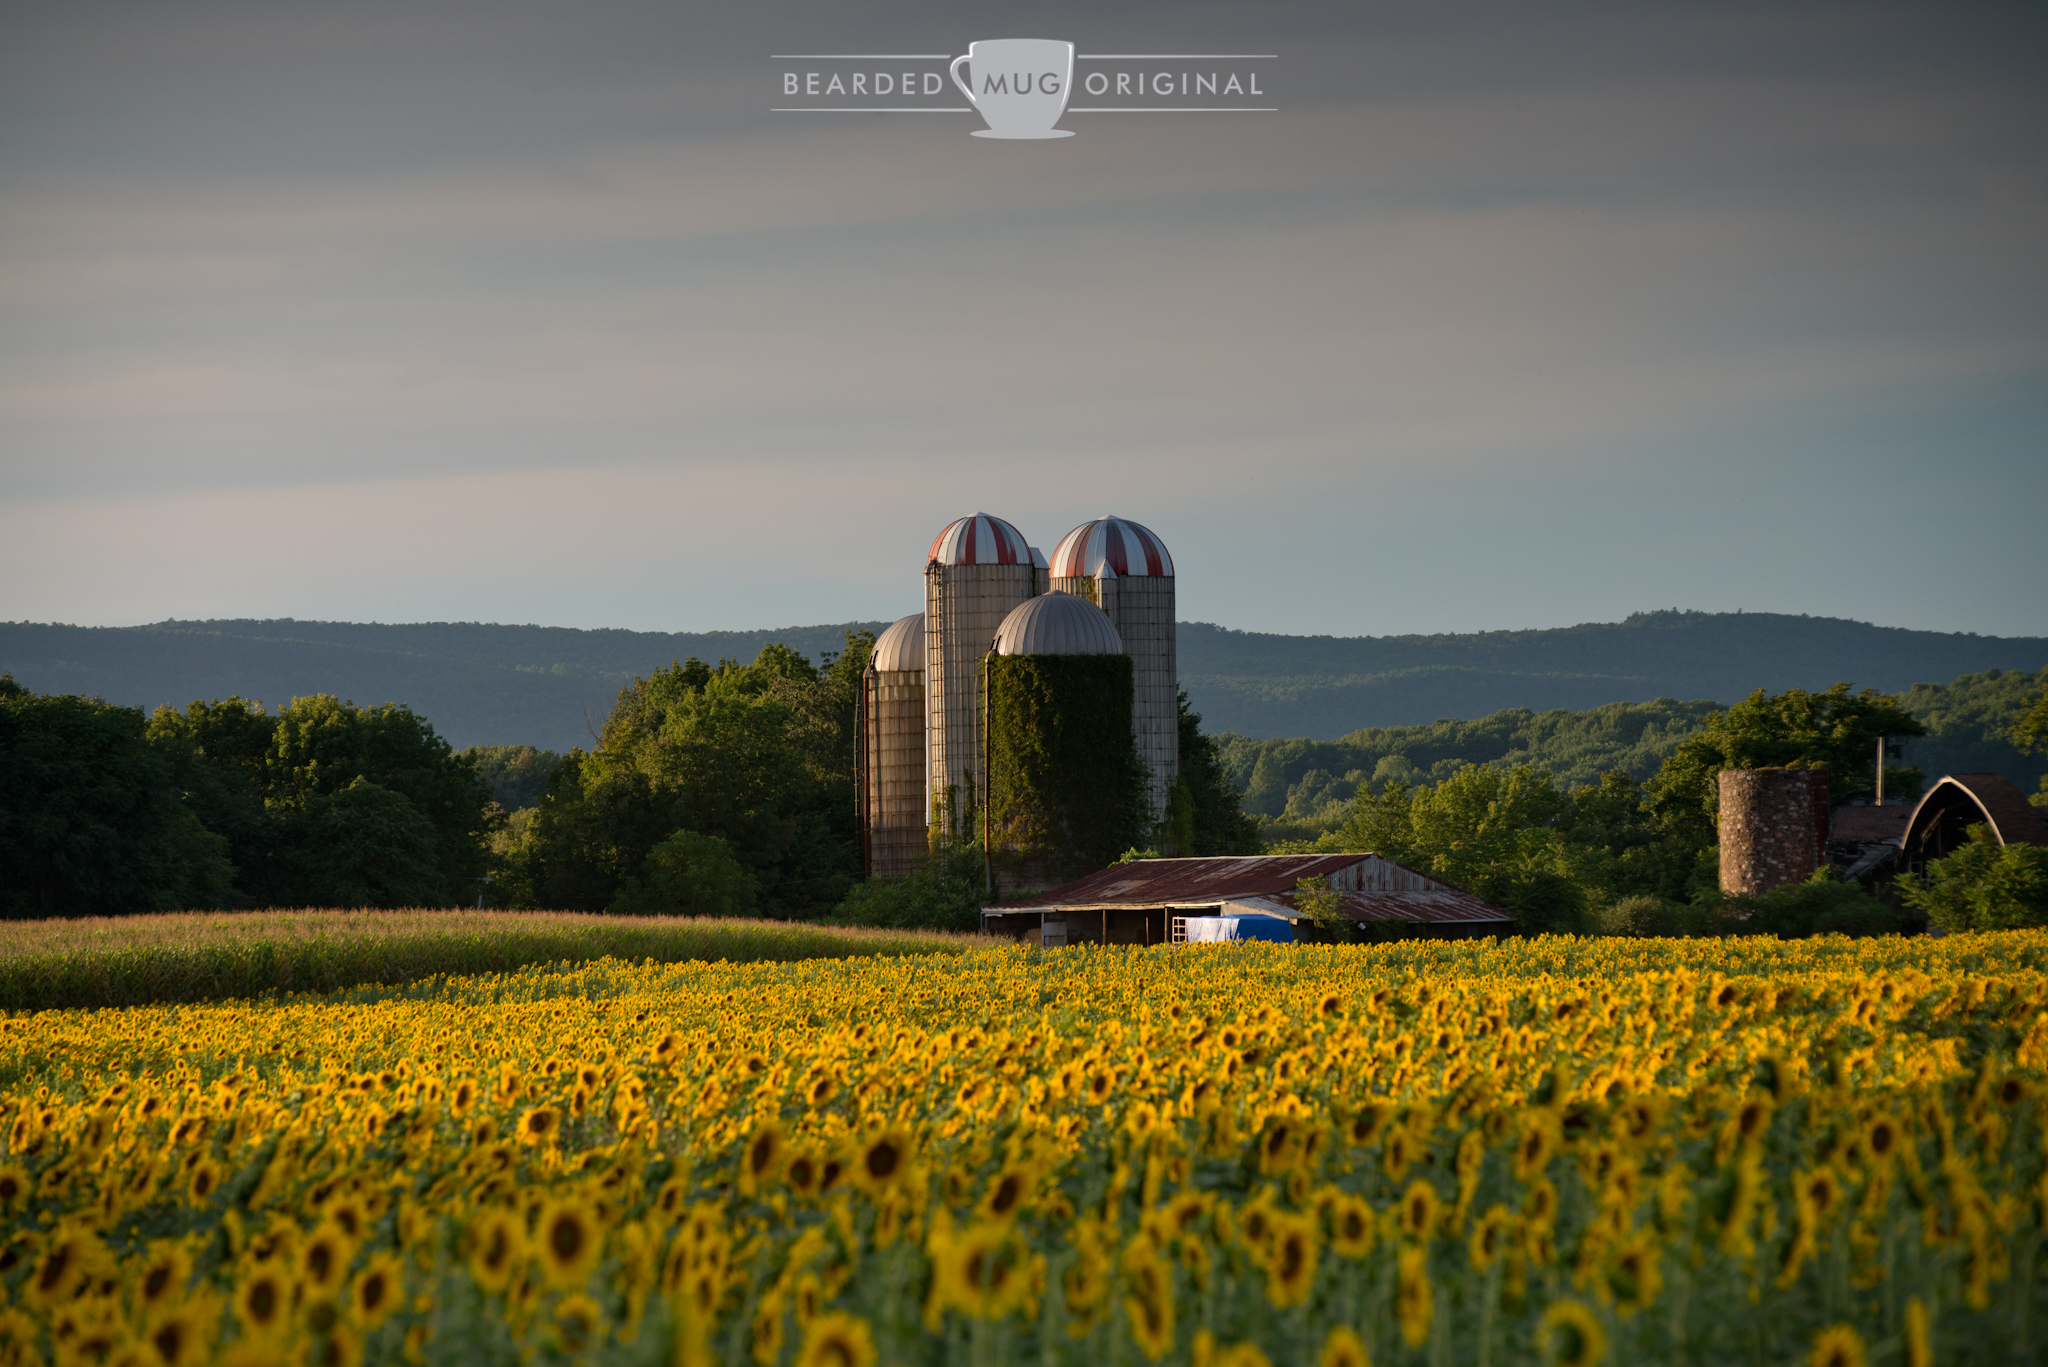 Who doesn't enjoy a good sunflower field with an assembly of stave silos watching over it?